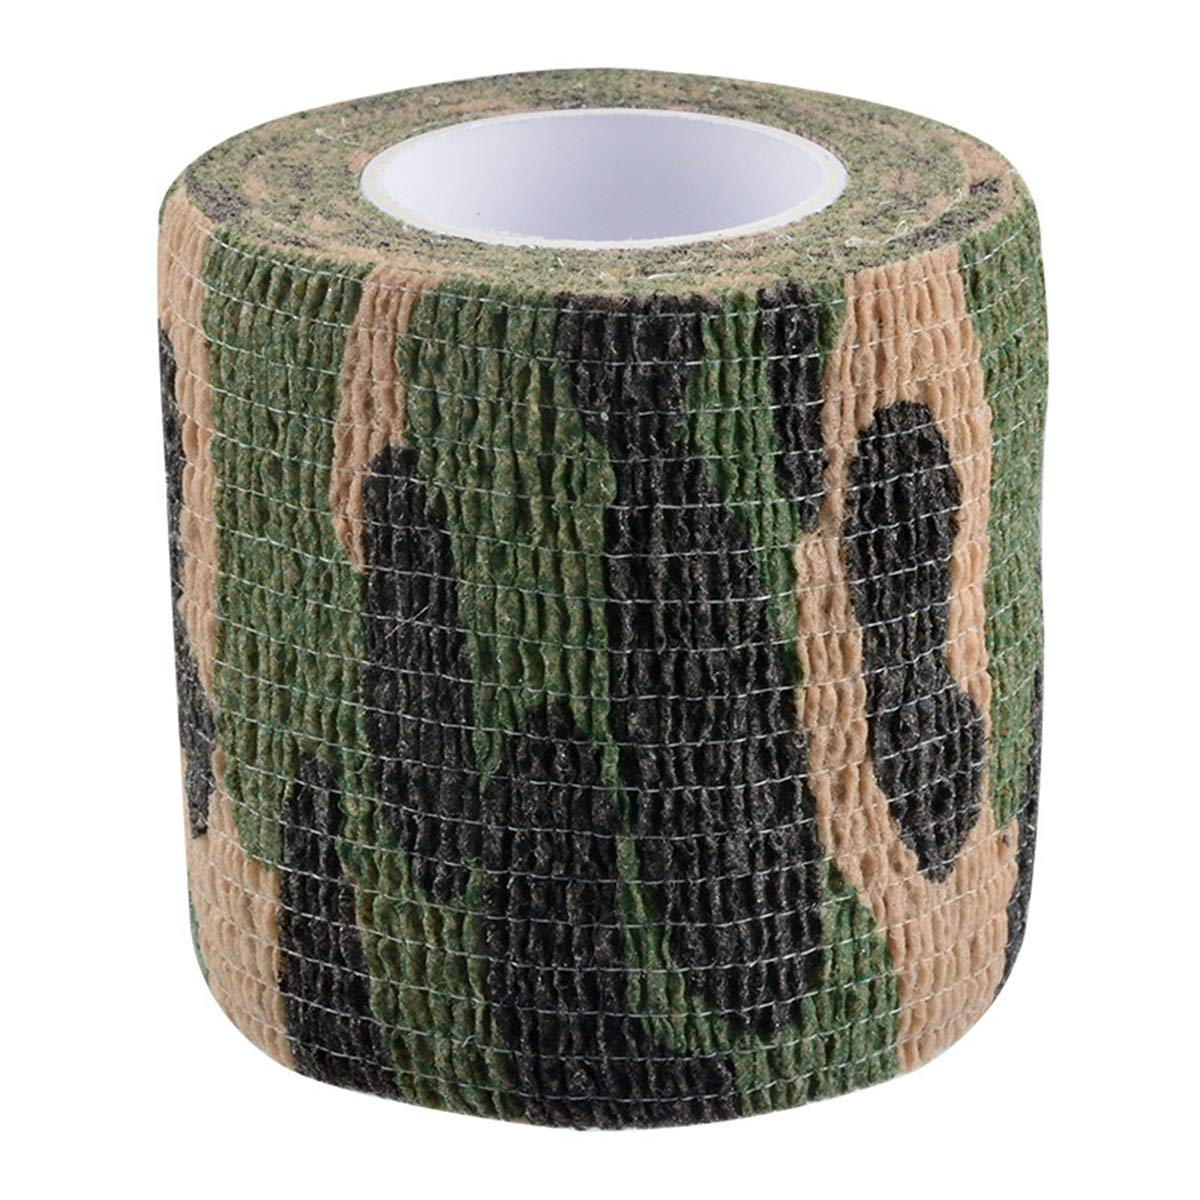 Tornado Camouflage Tape Self-Adhesive Camo Wrap Tape Cling Scope Wrap Military Camo Multifunction for Gun Rifle Shotgun Camping Hunting